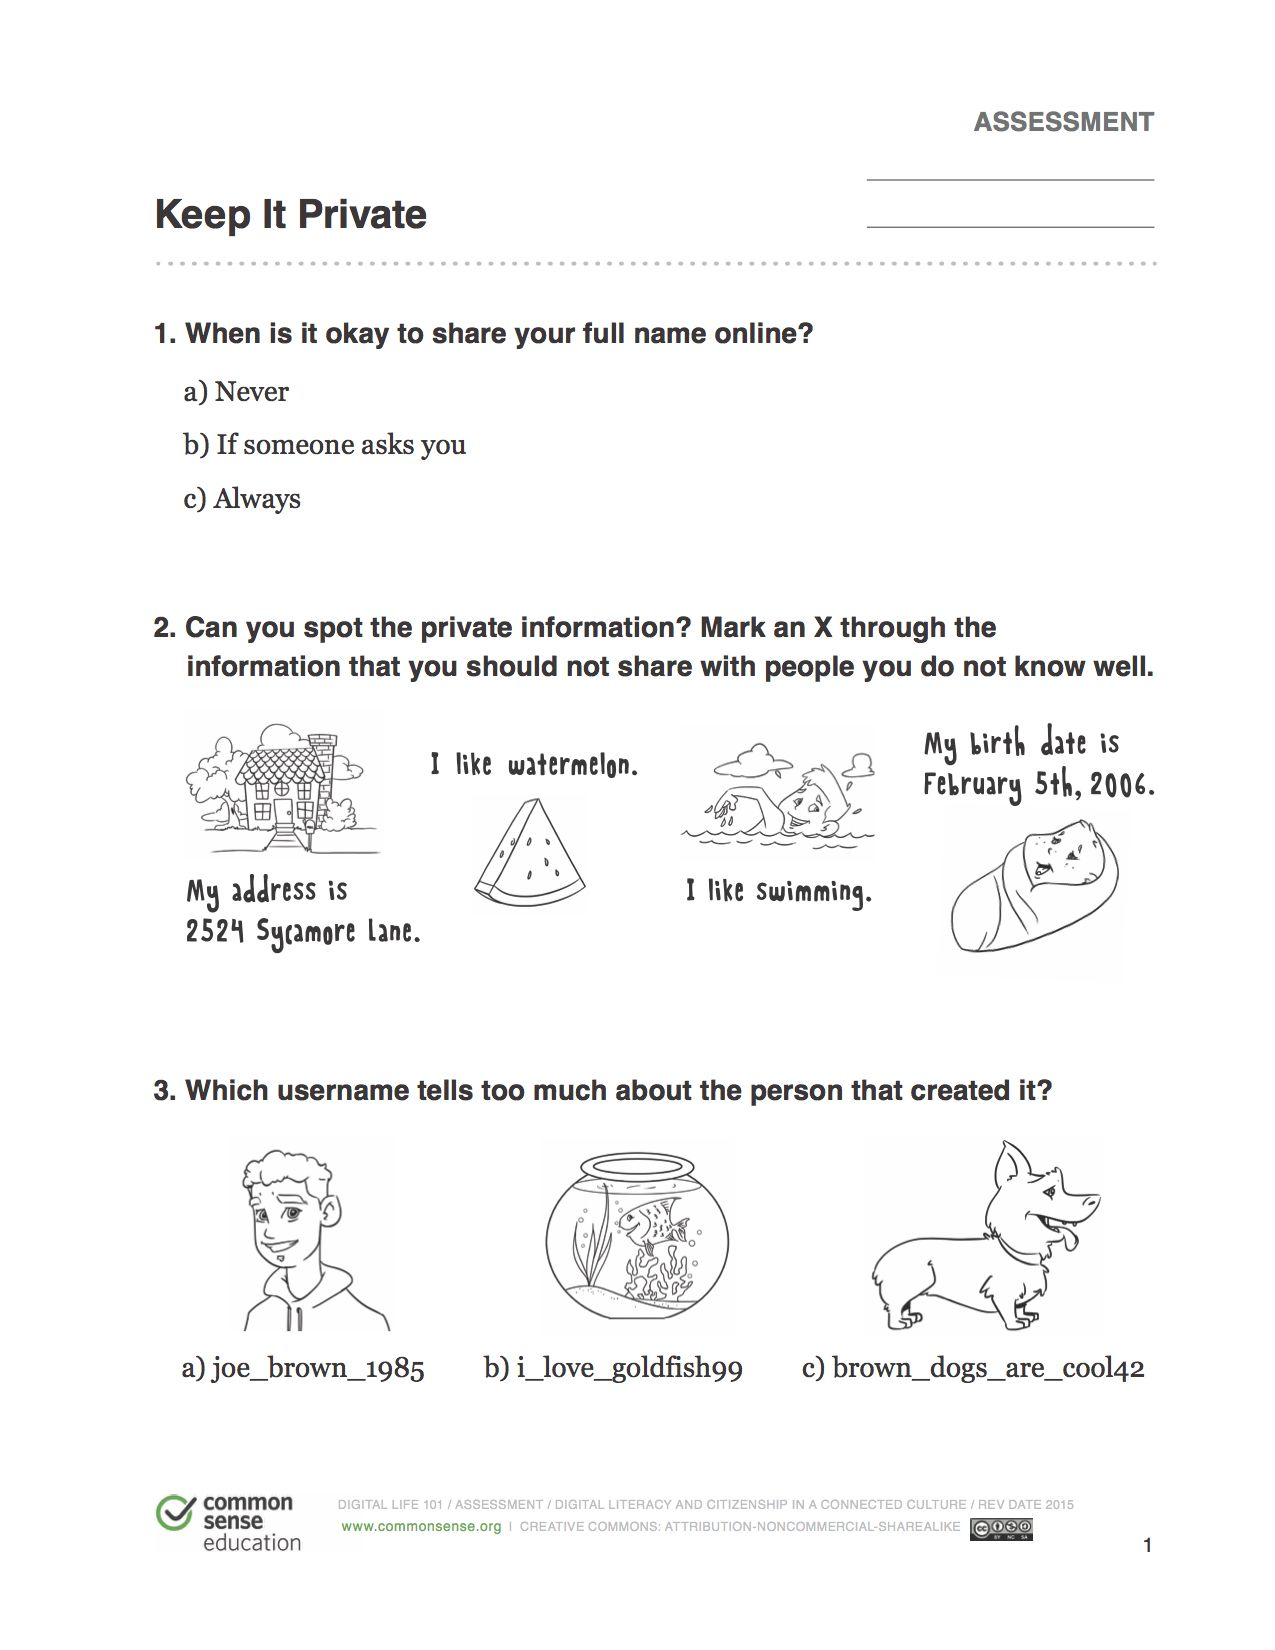 image regarding Free Printable Internet Safety Worksheets called World-wide-web security worksheet for young children fitness for young children